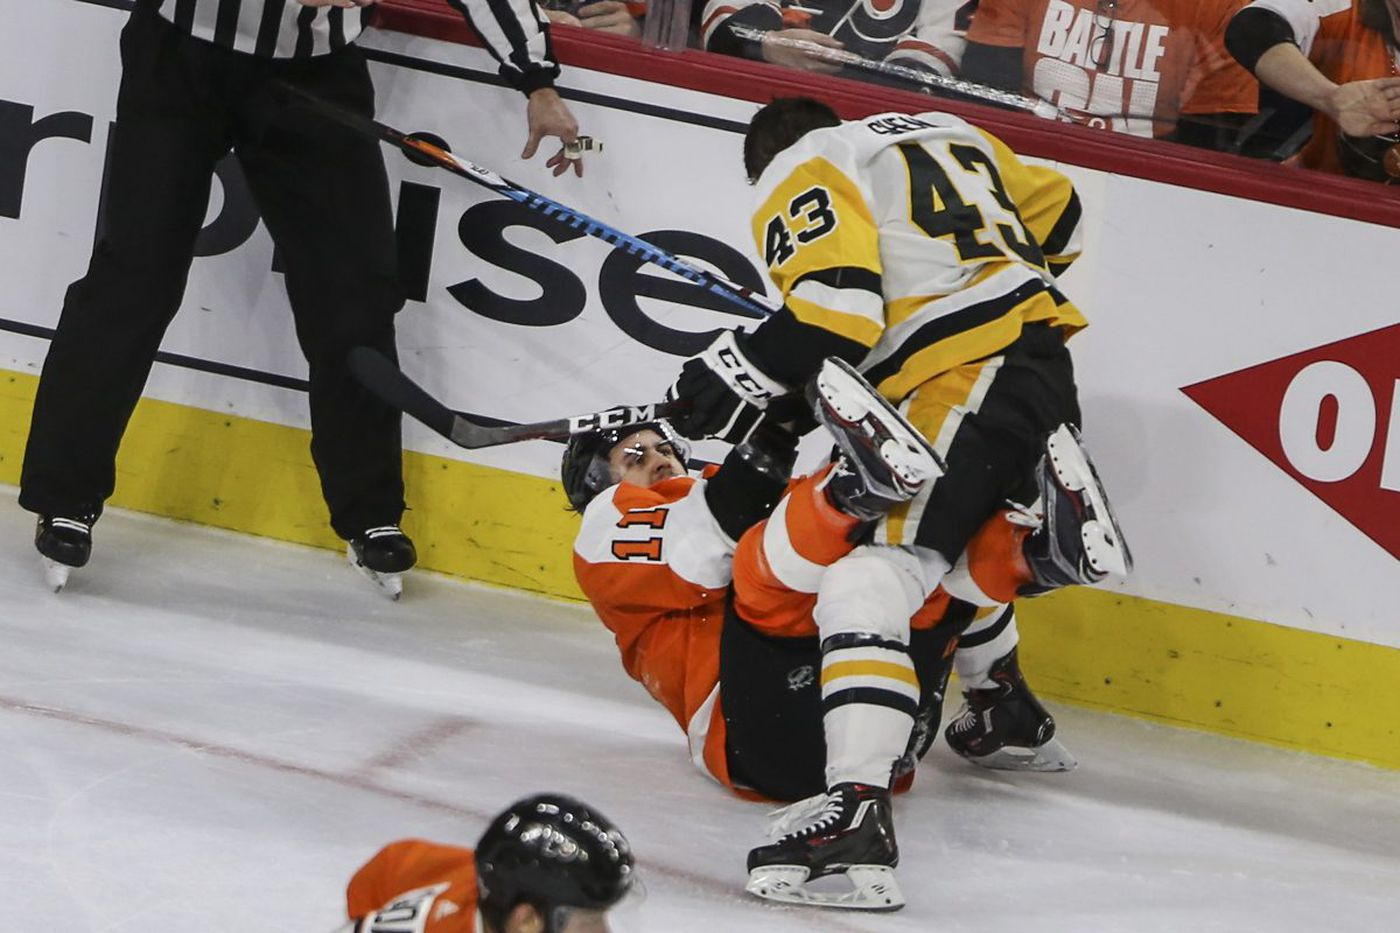 Flyers eliminated from NHL playoffs by Penguins despite Sean Couturier's heroics